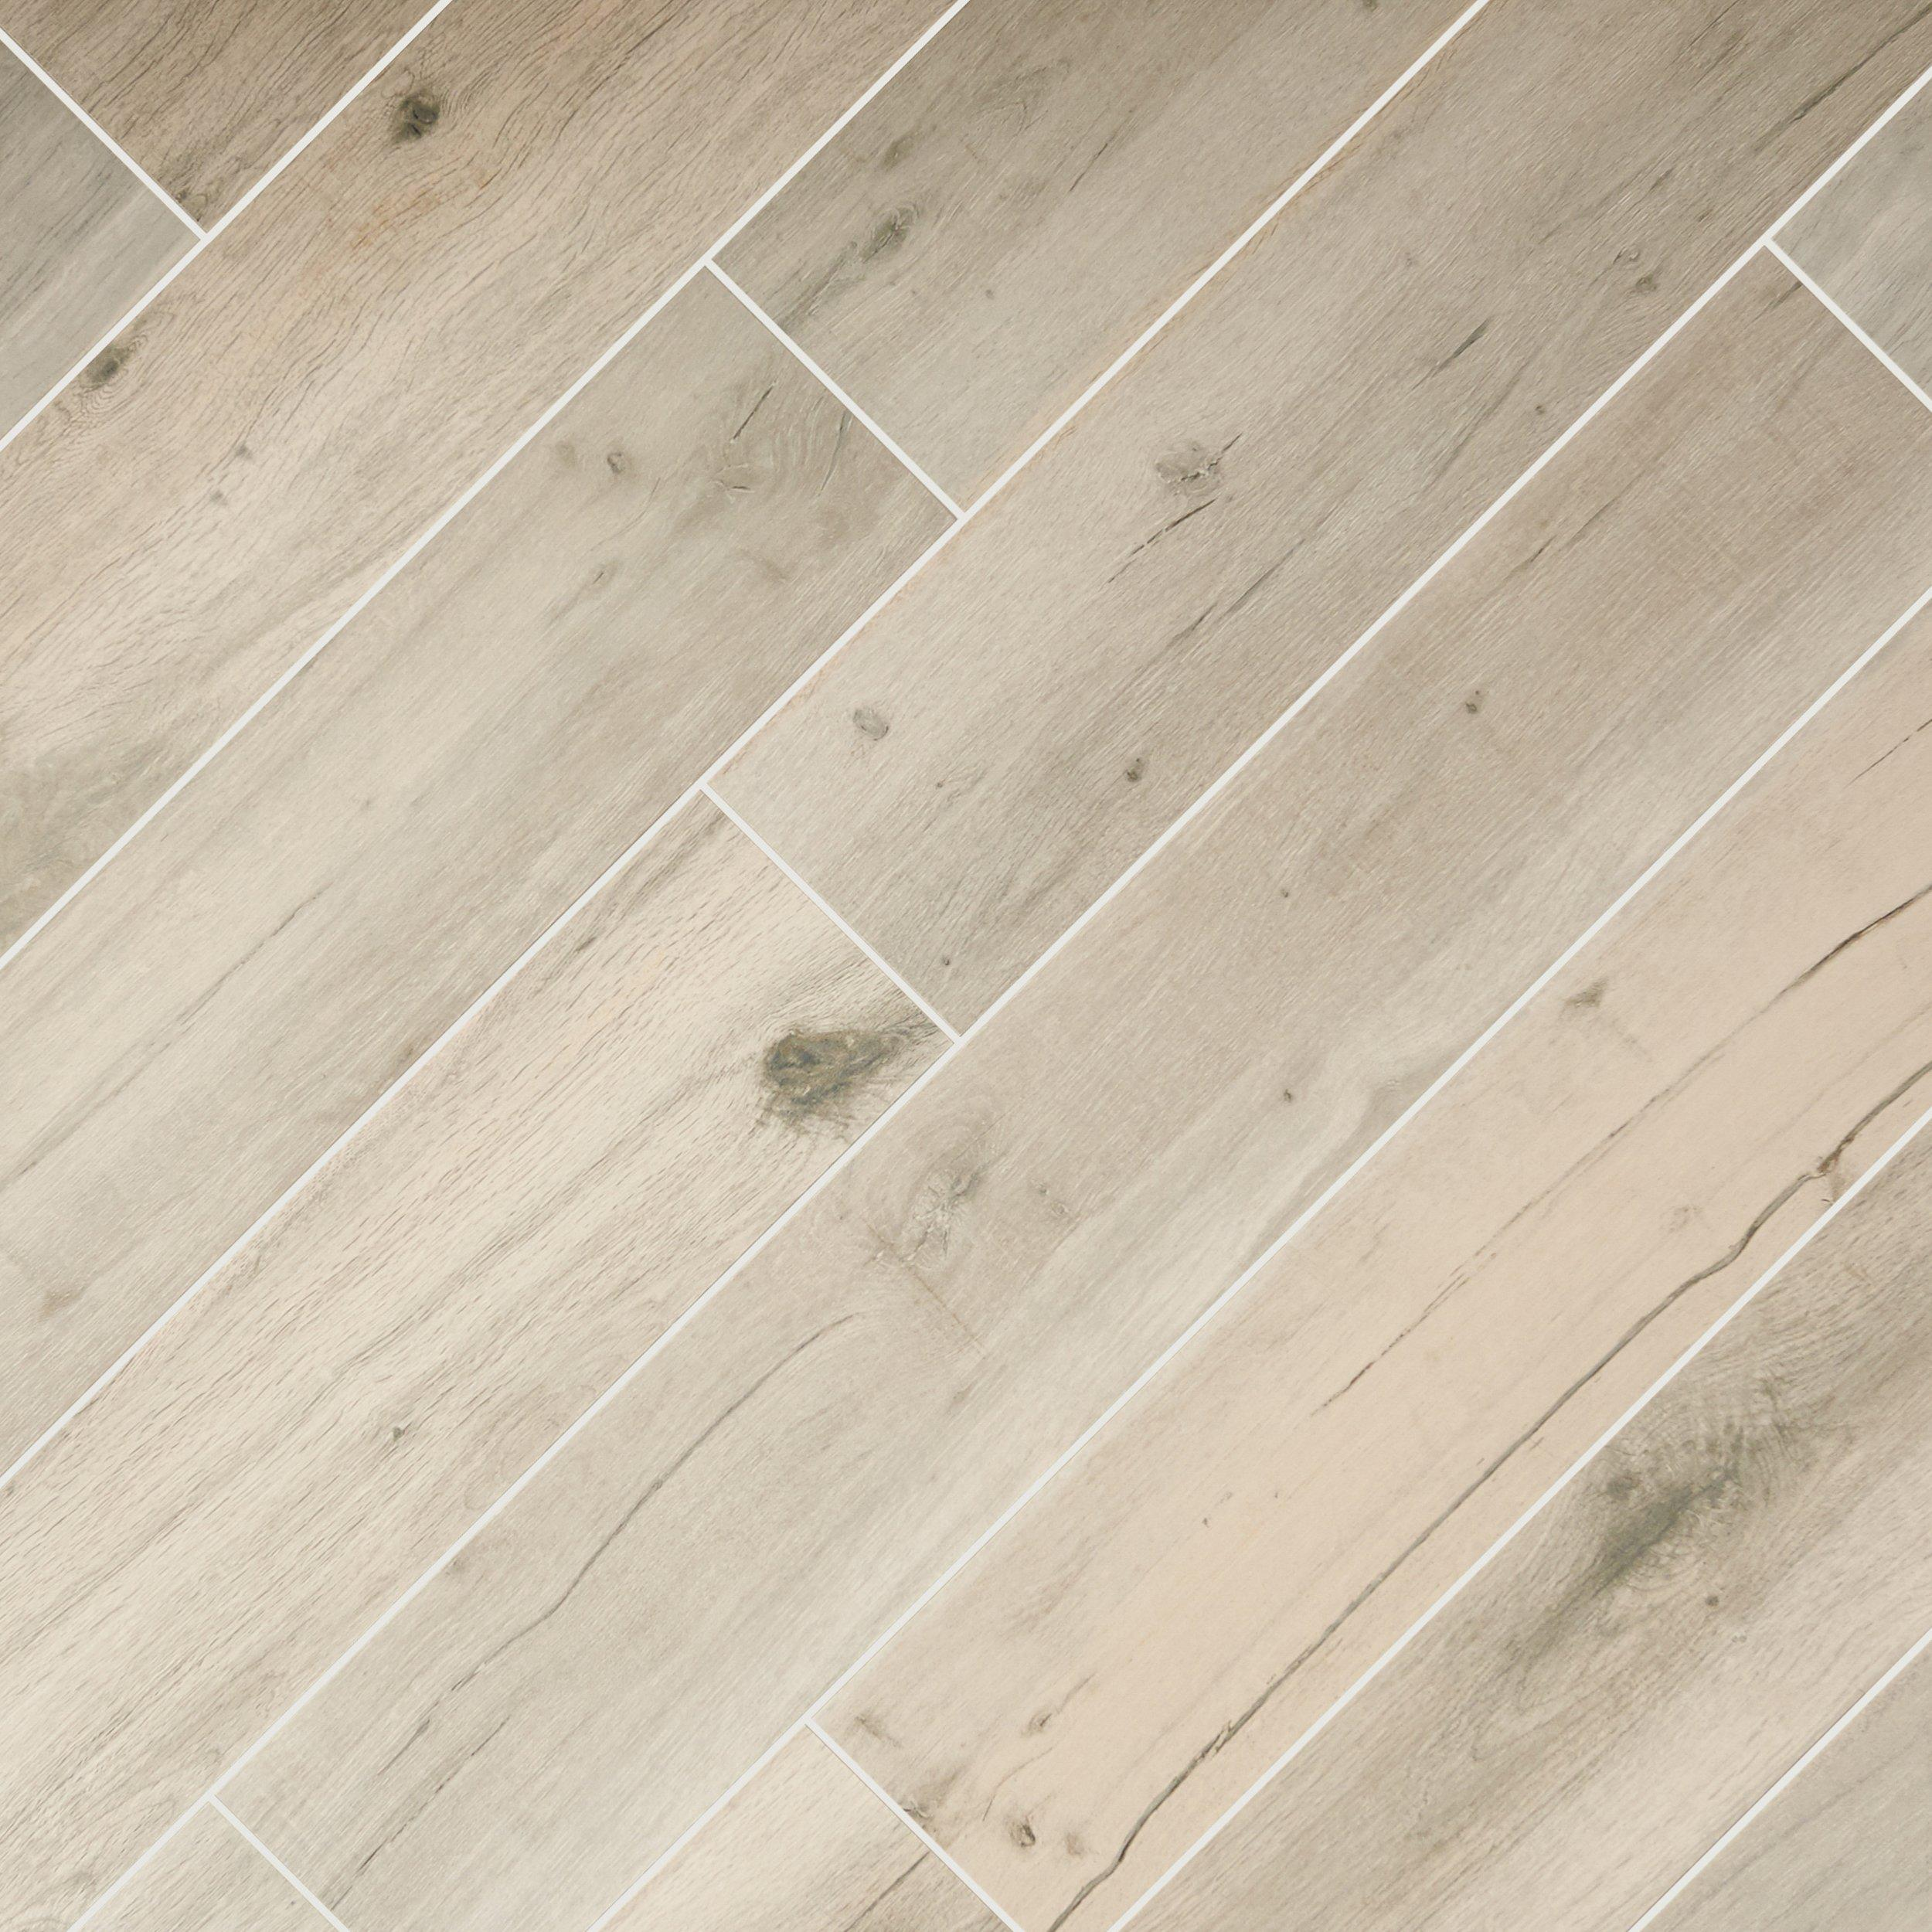 Birch Forest Gray Wood Plank Porcelain Tile   6in. X 36in.   100063999 |  Floor And Decor